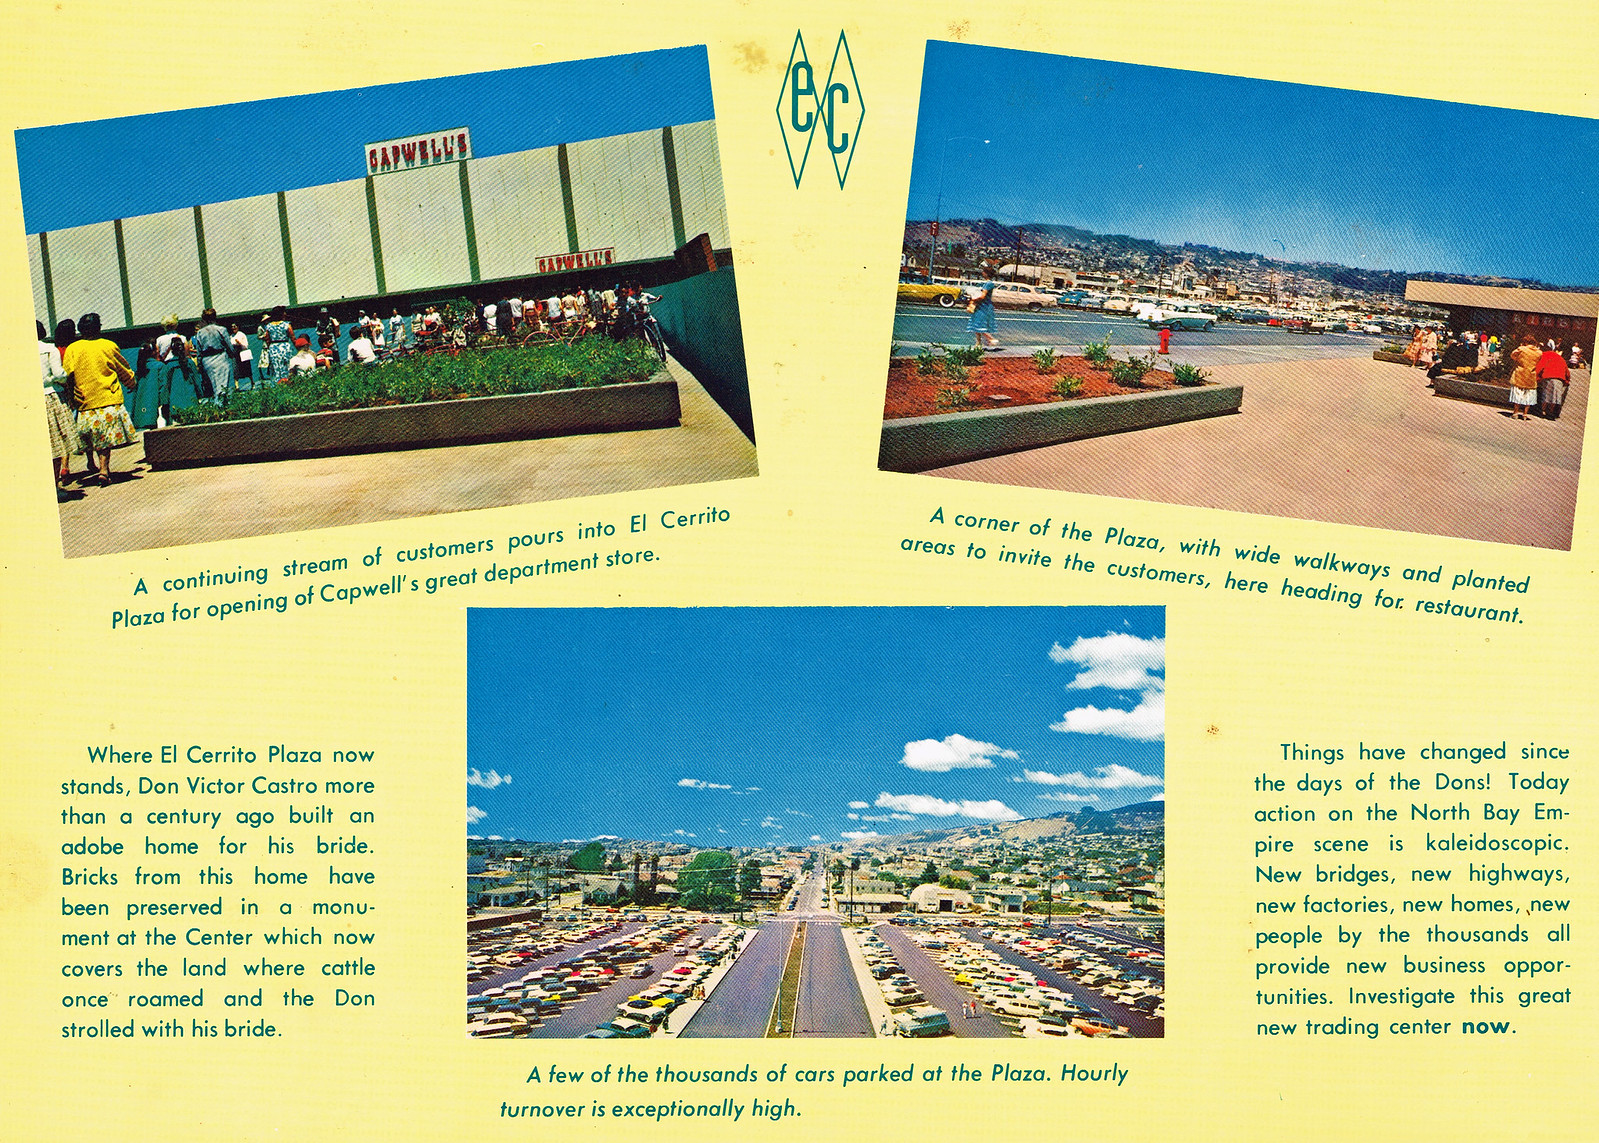 ec plaza promo card 1961a